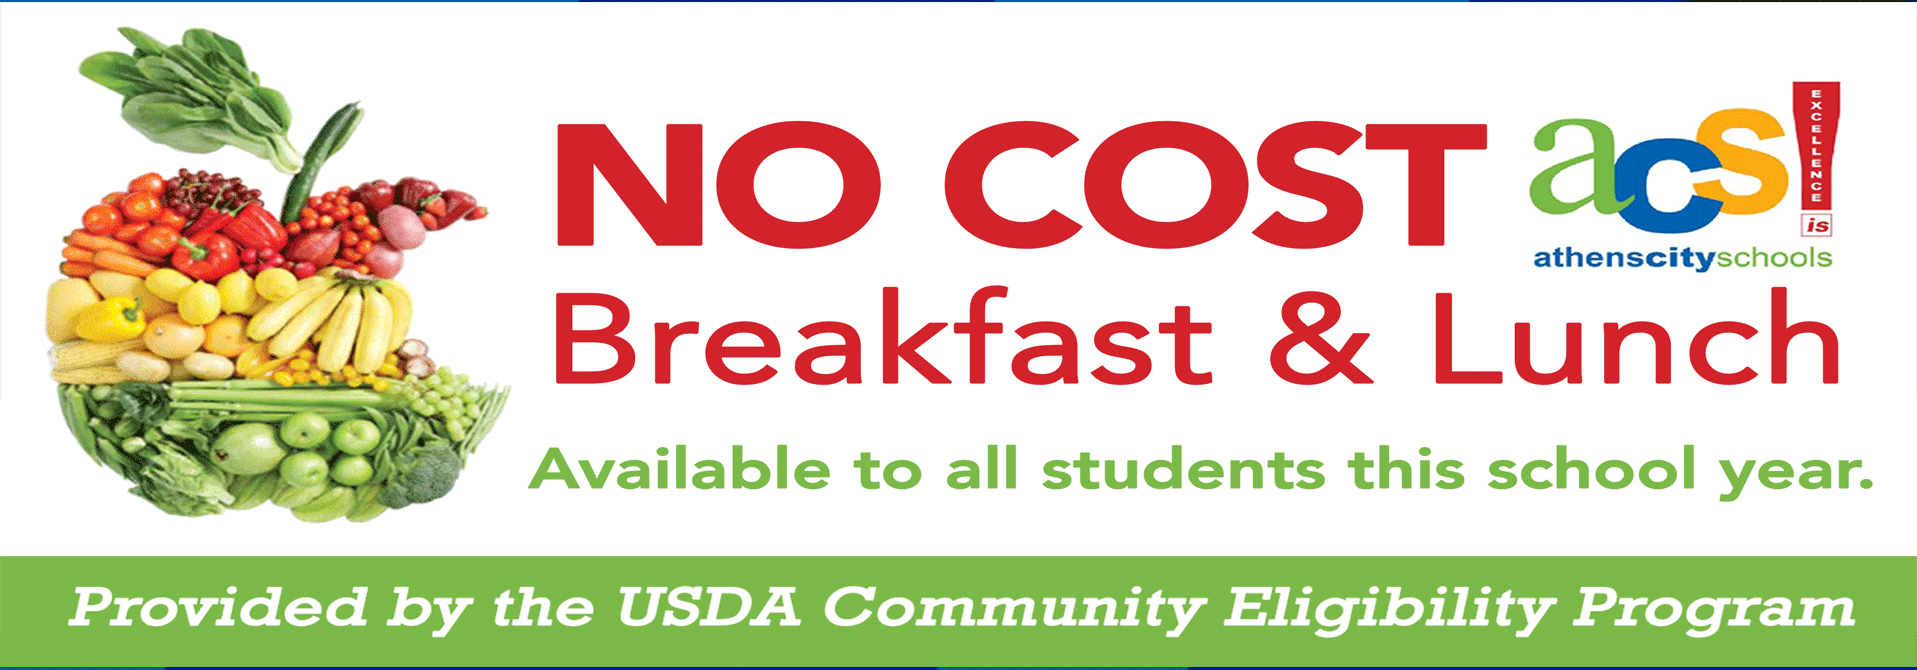 no cost breakfast and lunch